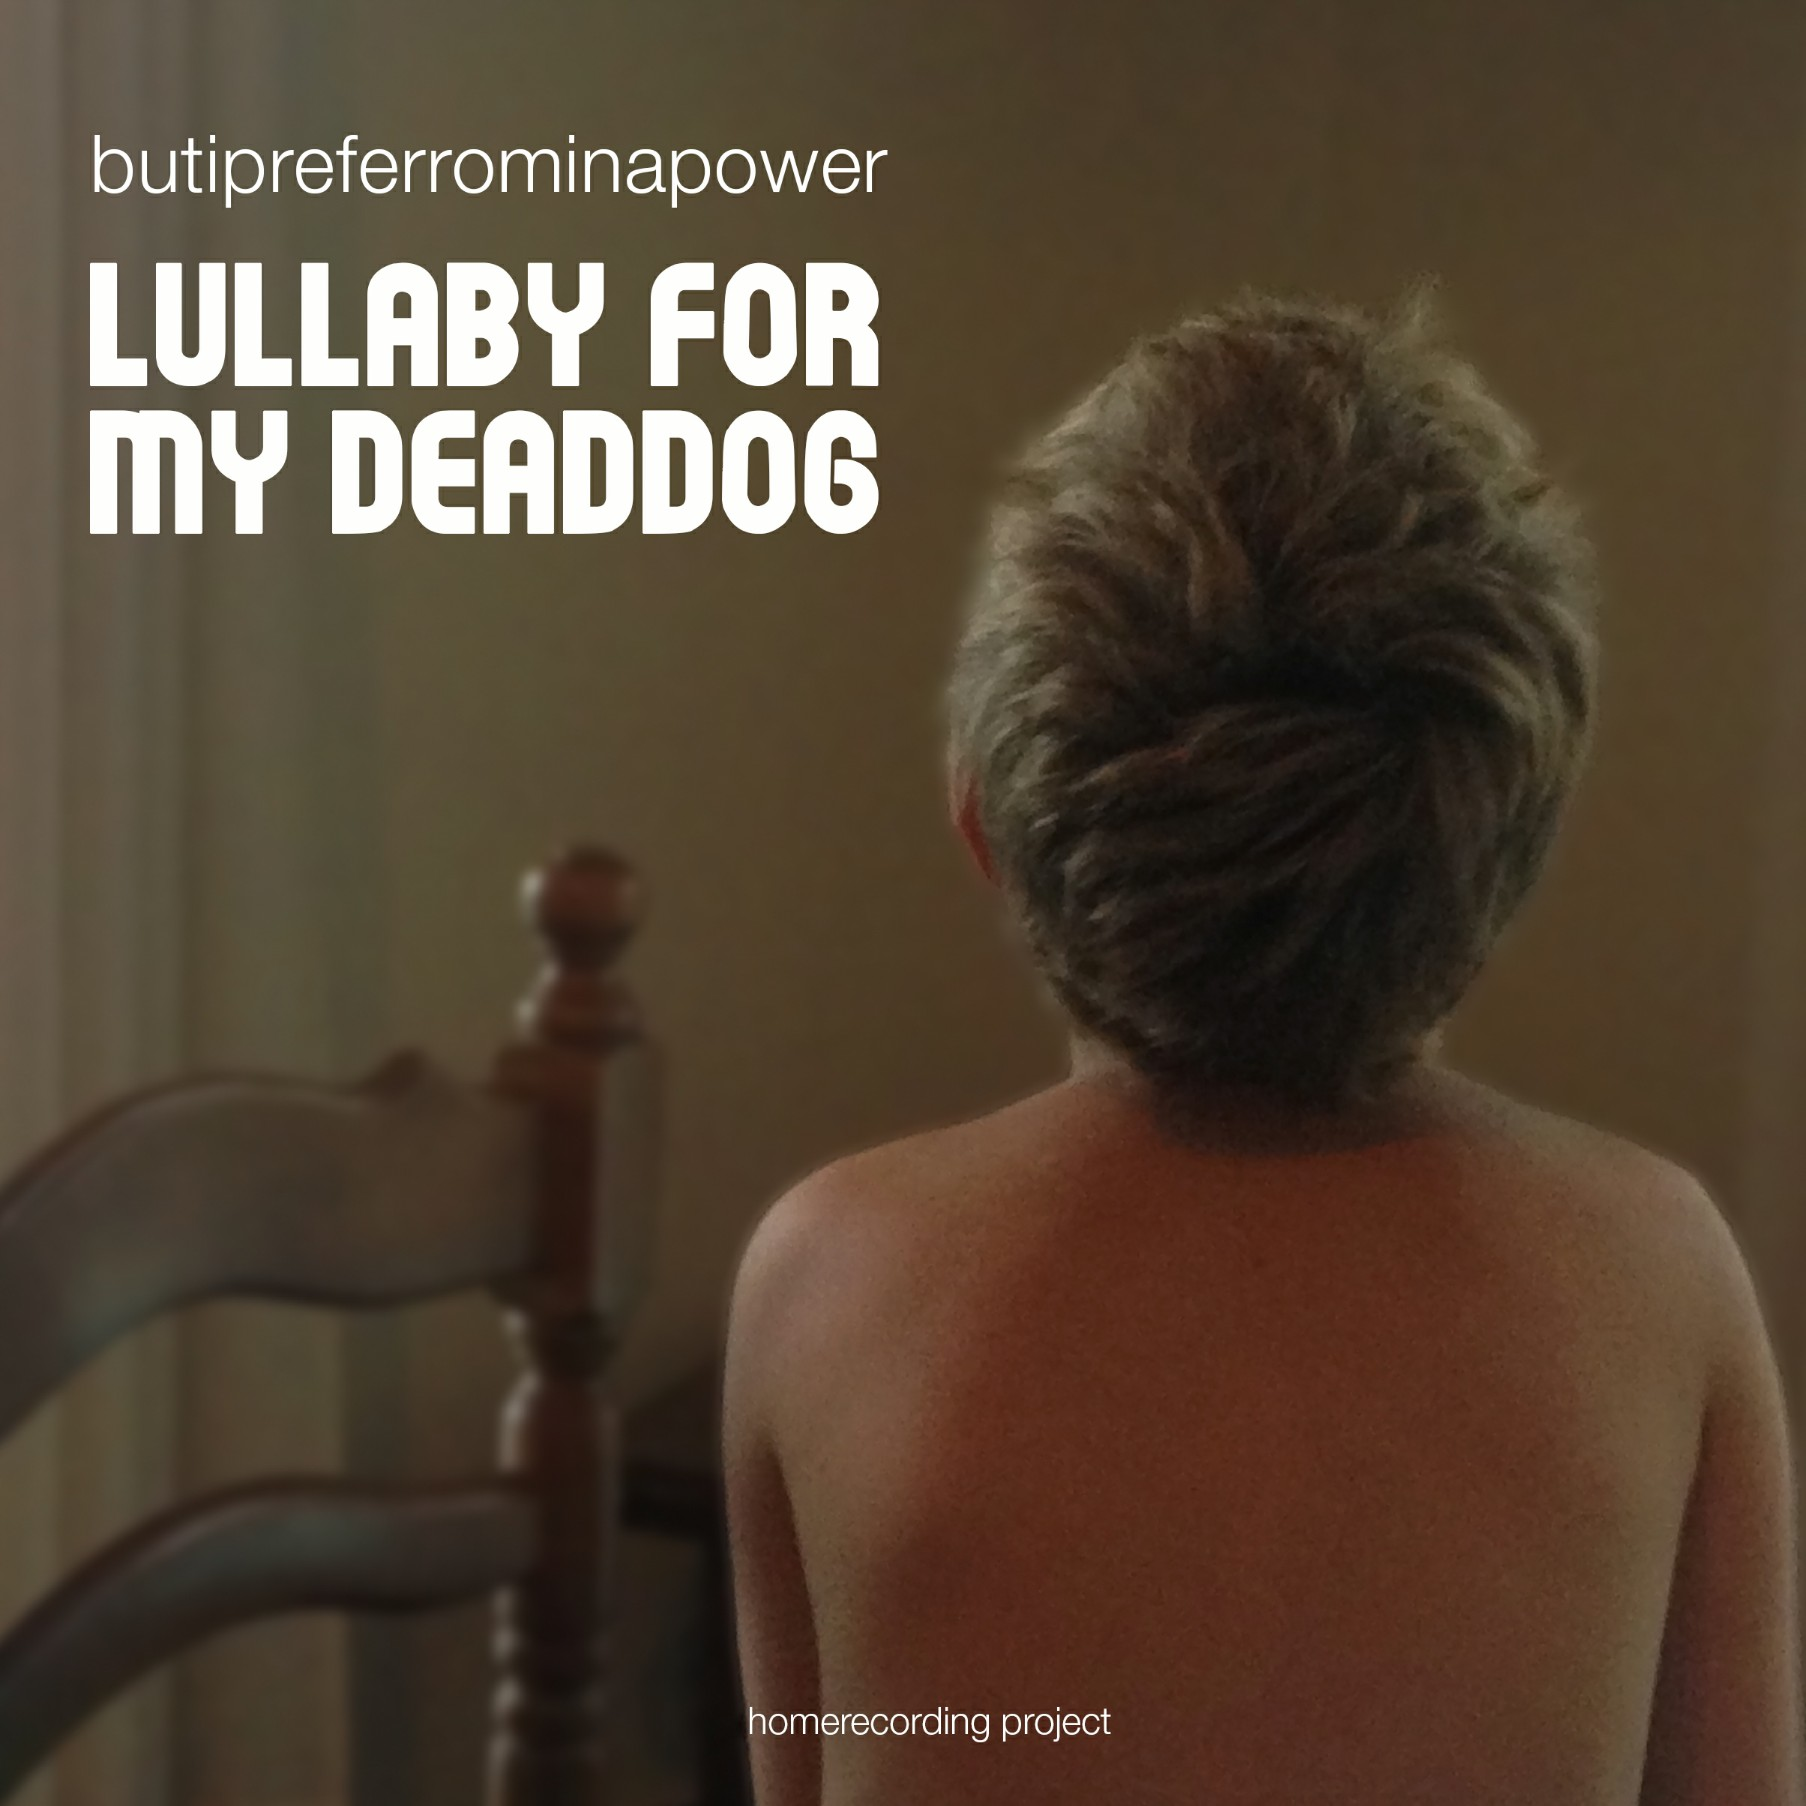 BUTIPREFERROMINAPOWER - LULLABY FOR MY DEADDOG 9 - fanzine